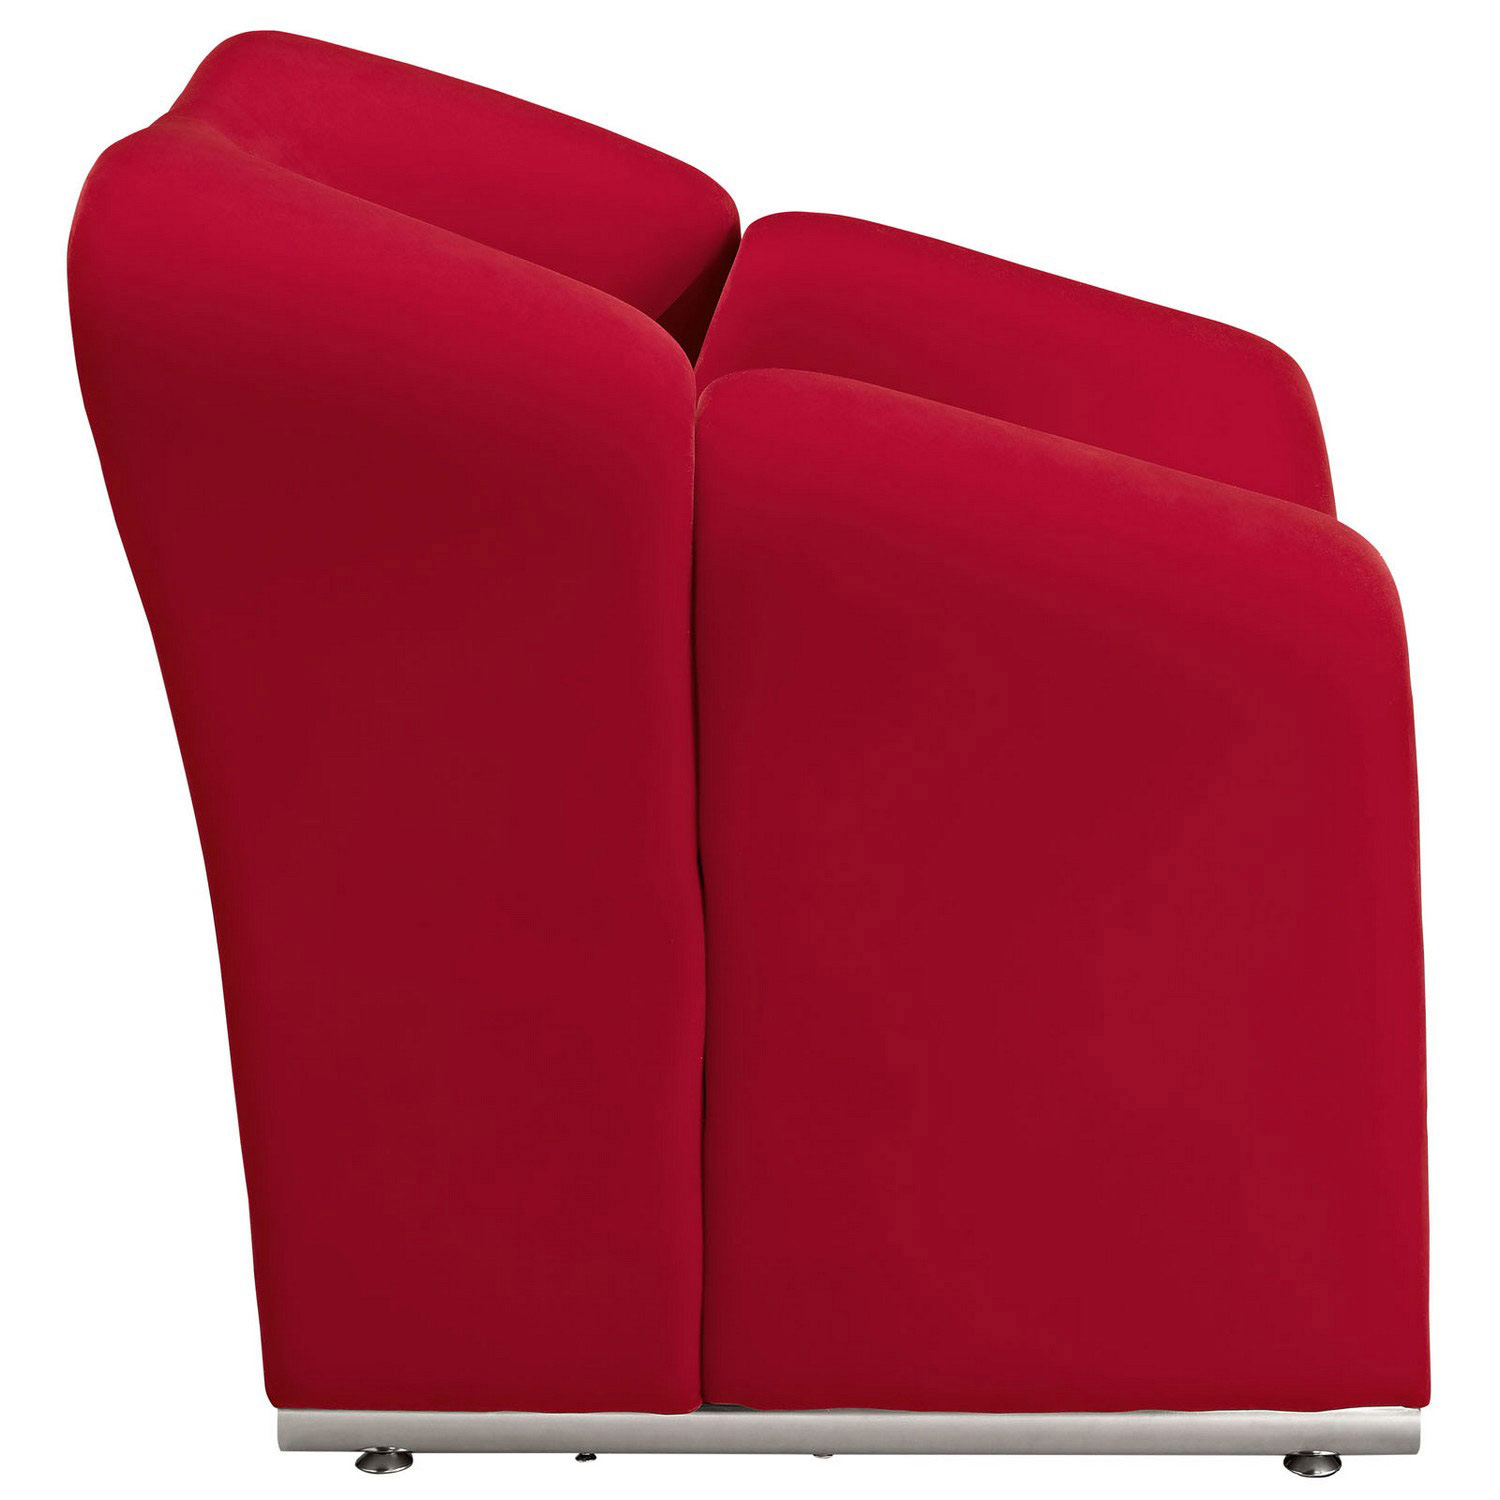 Modway Cusp Lounge Chair - Red